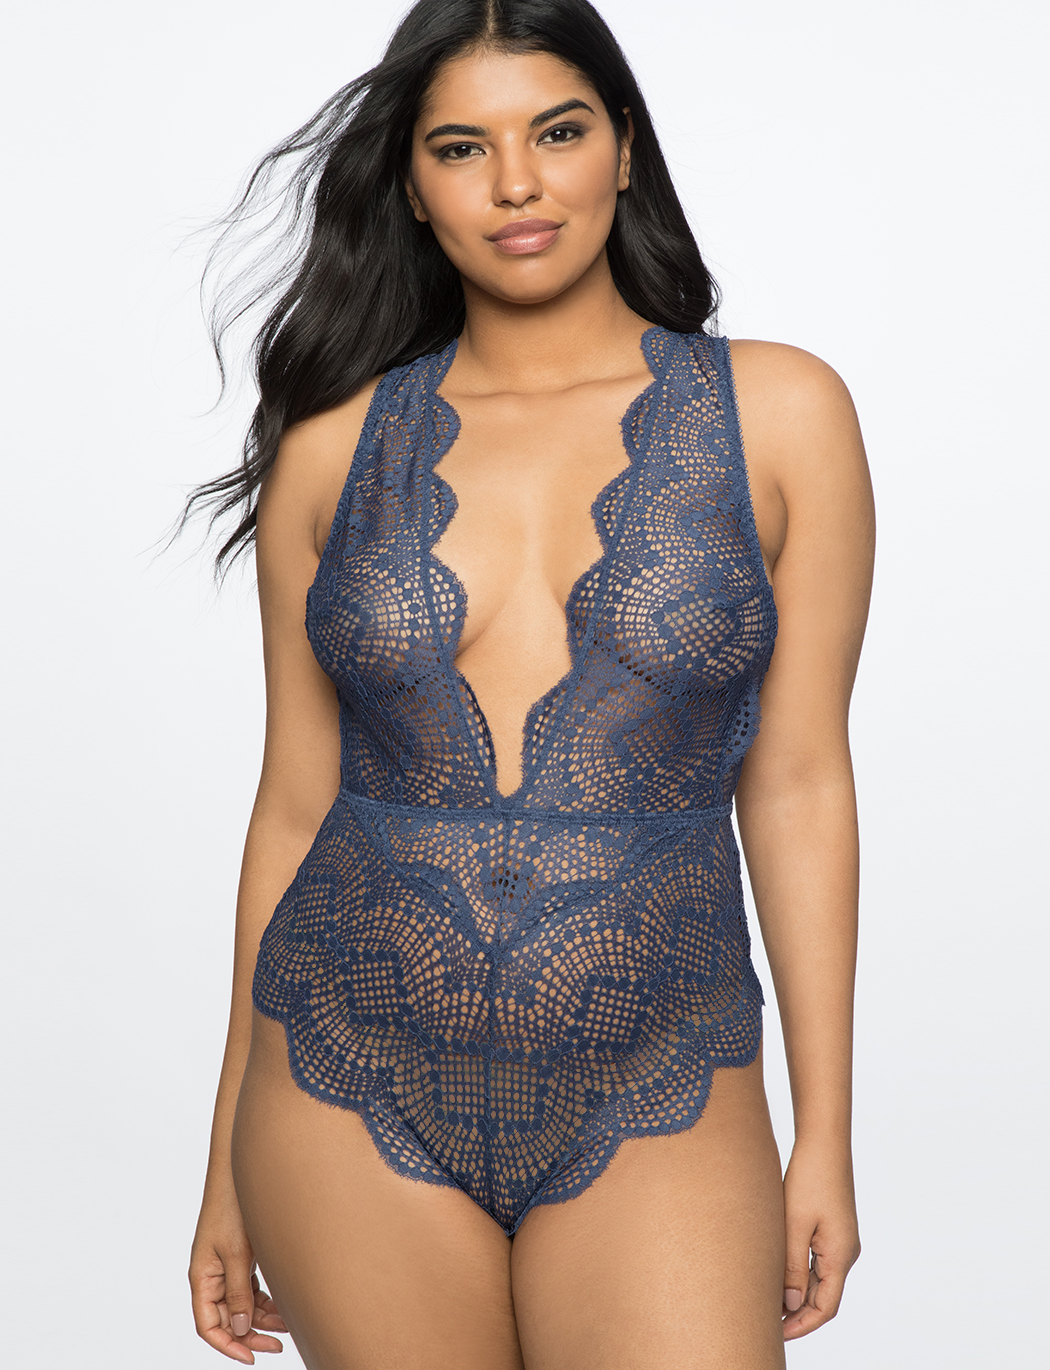 Lace Bodysuit with Plunging Neckline  5a1aaffb5